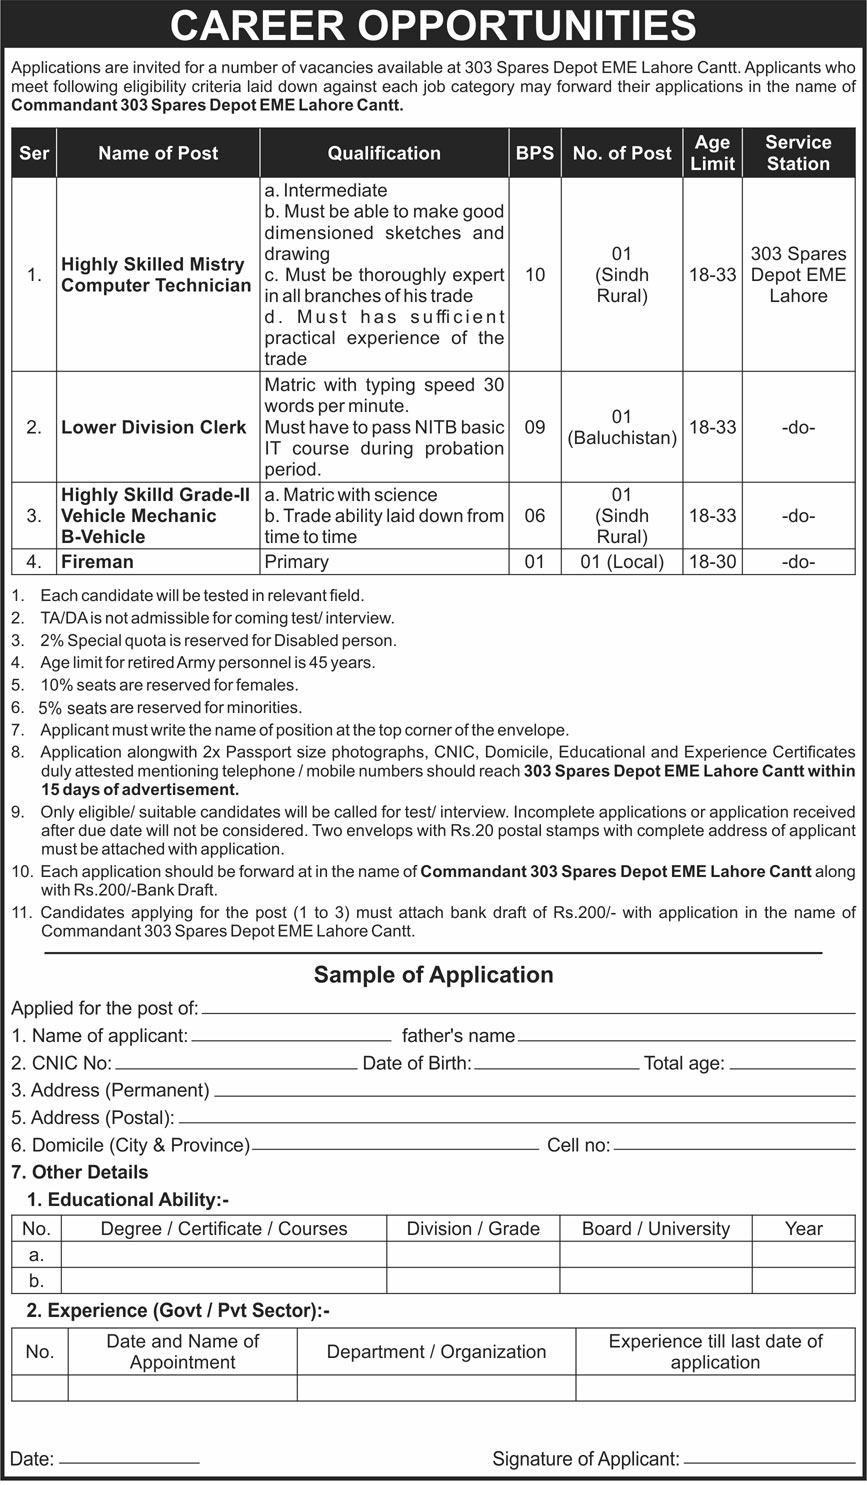 Army Civilian Jobs 2021 - Join Pak Army as Civilian 2021 - Army Vacancy - Army Careers 2021 - Army Positions 2021 - 303 Spares Depot EME Lahore Cantt Jobs 2021